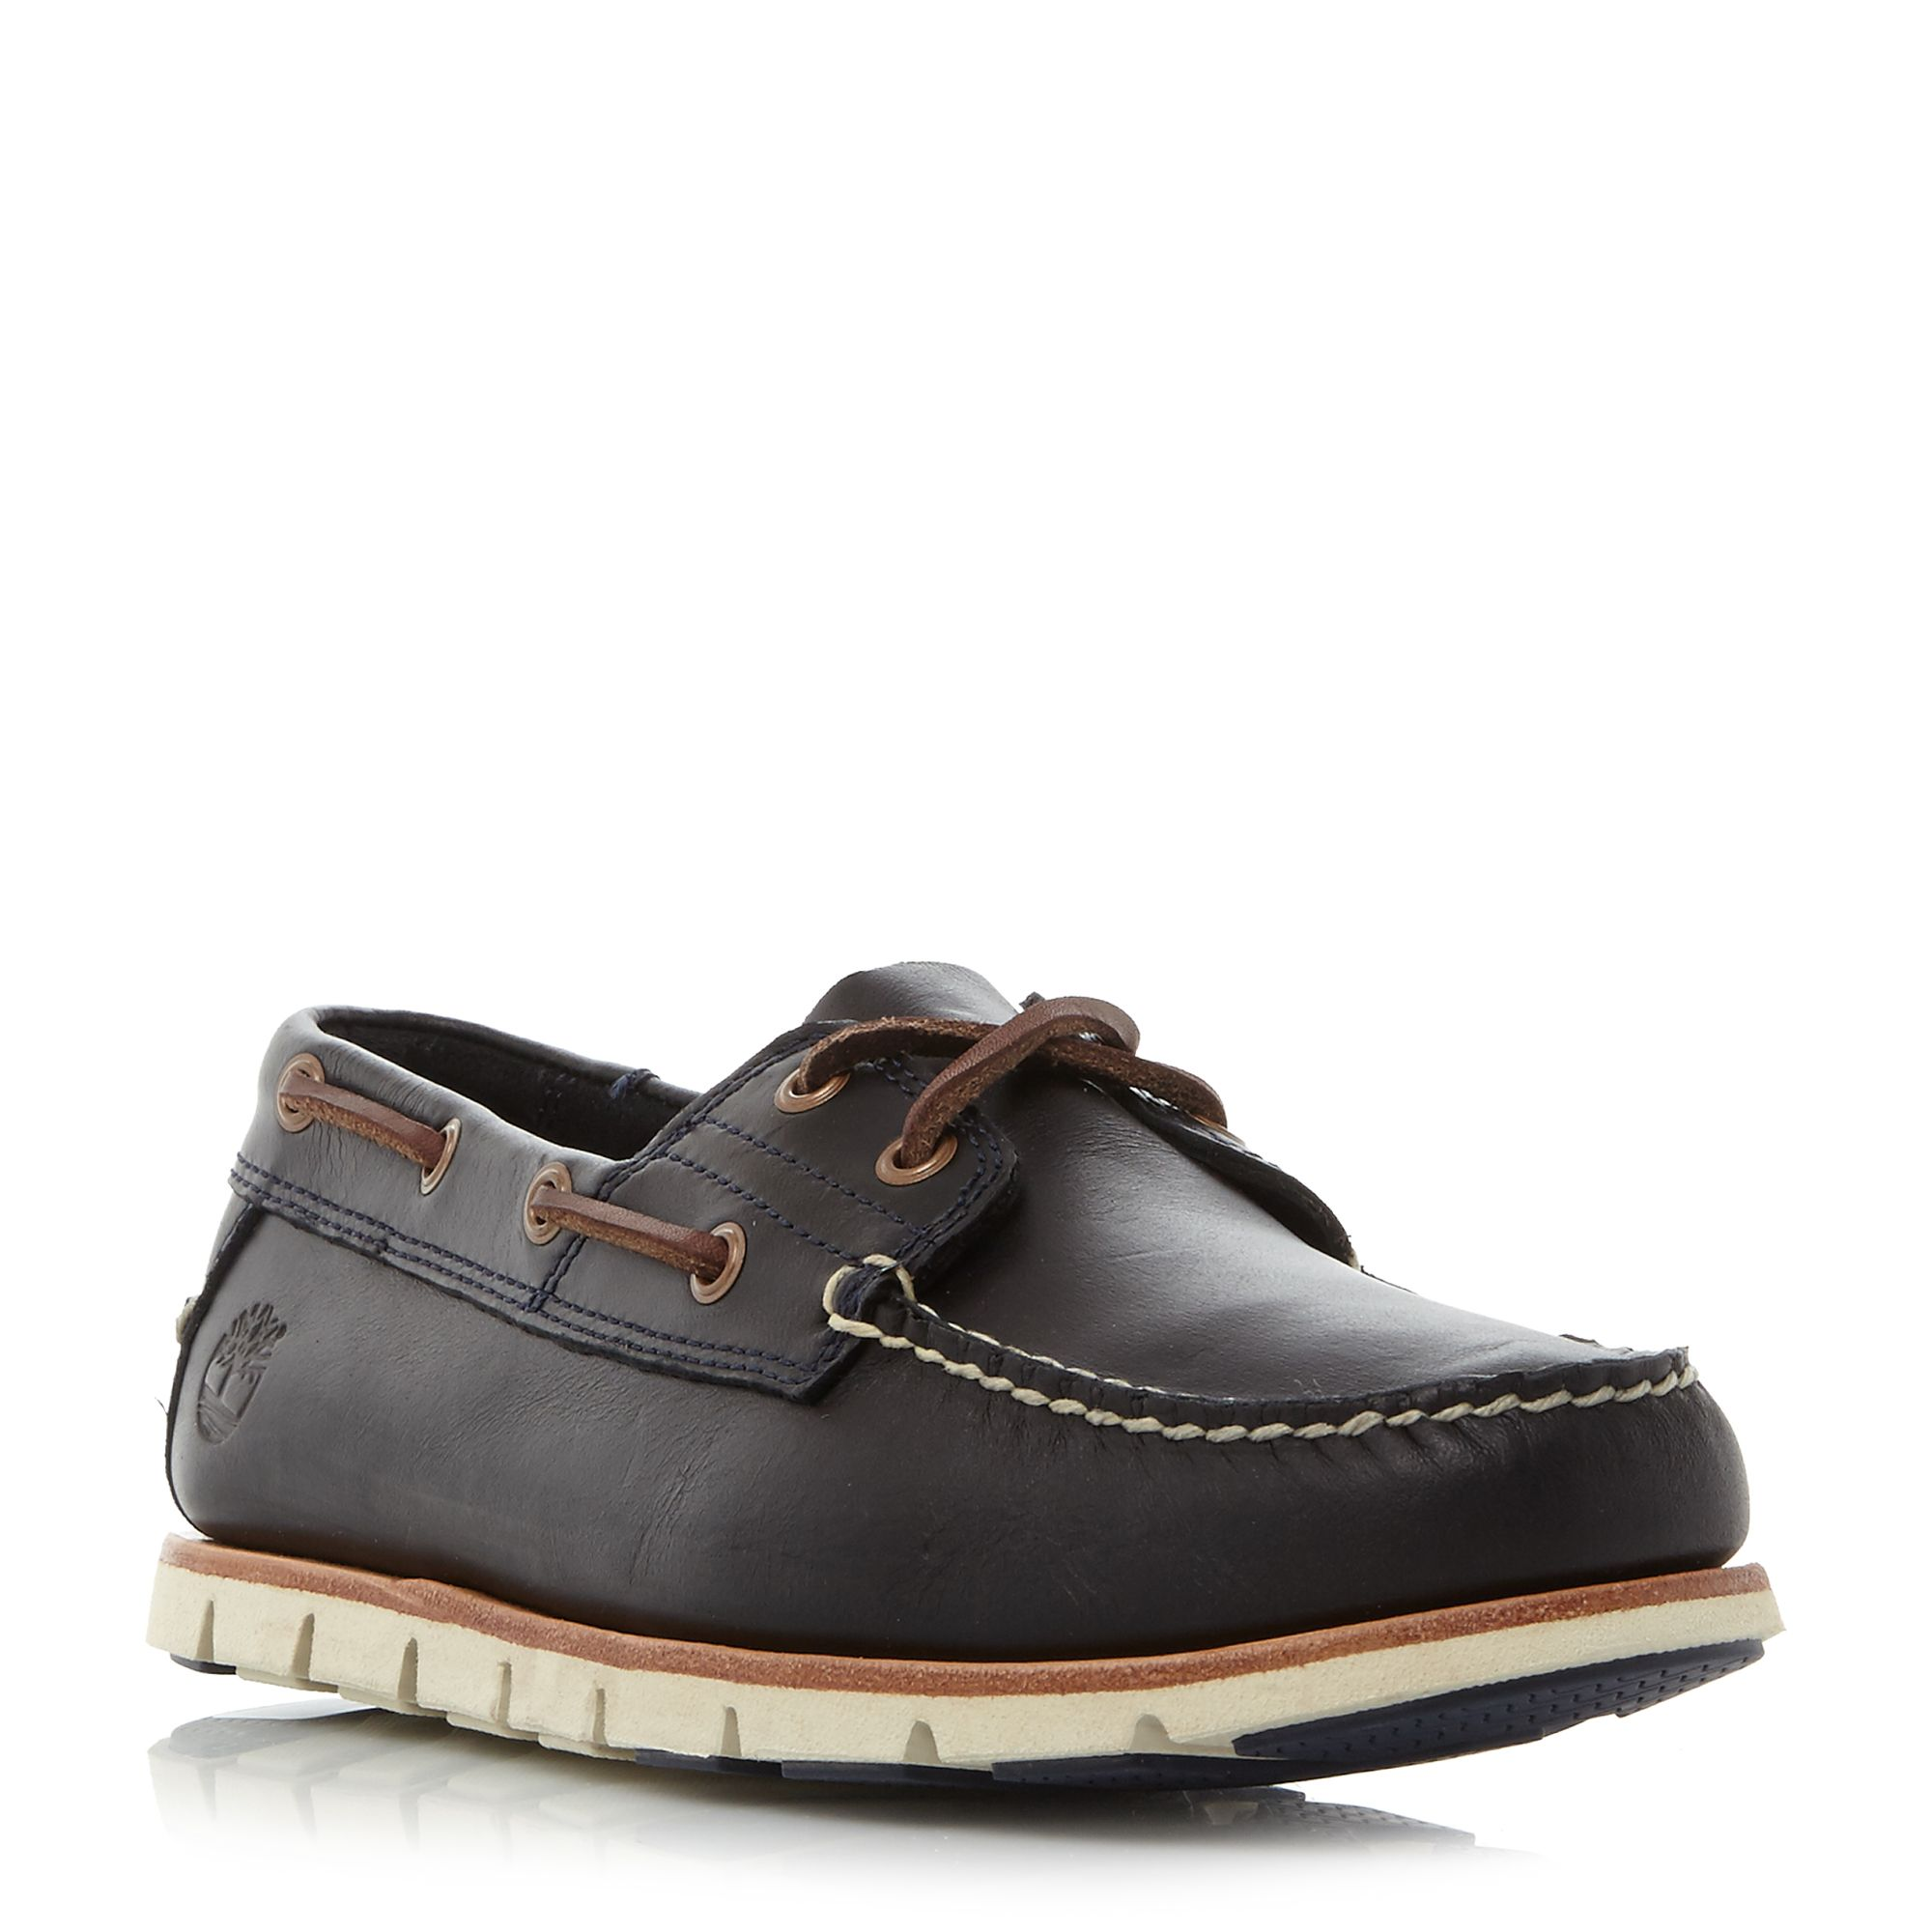 Timberland A1bbu cleated sole boat shoe Navy